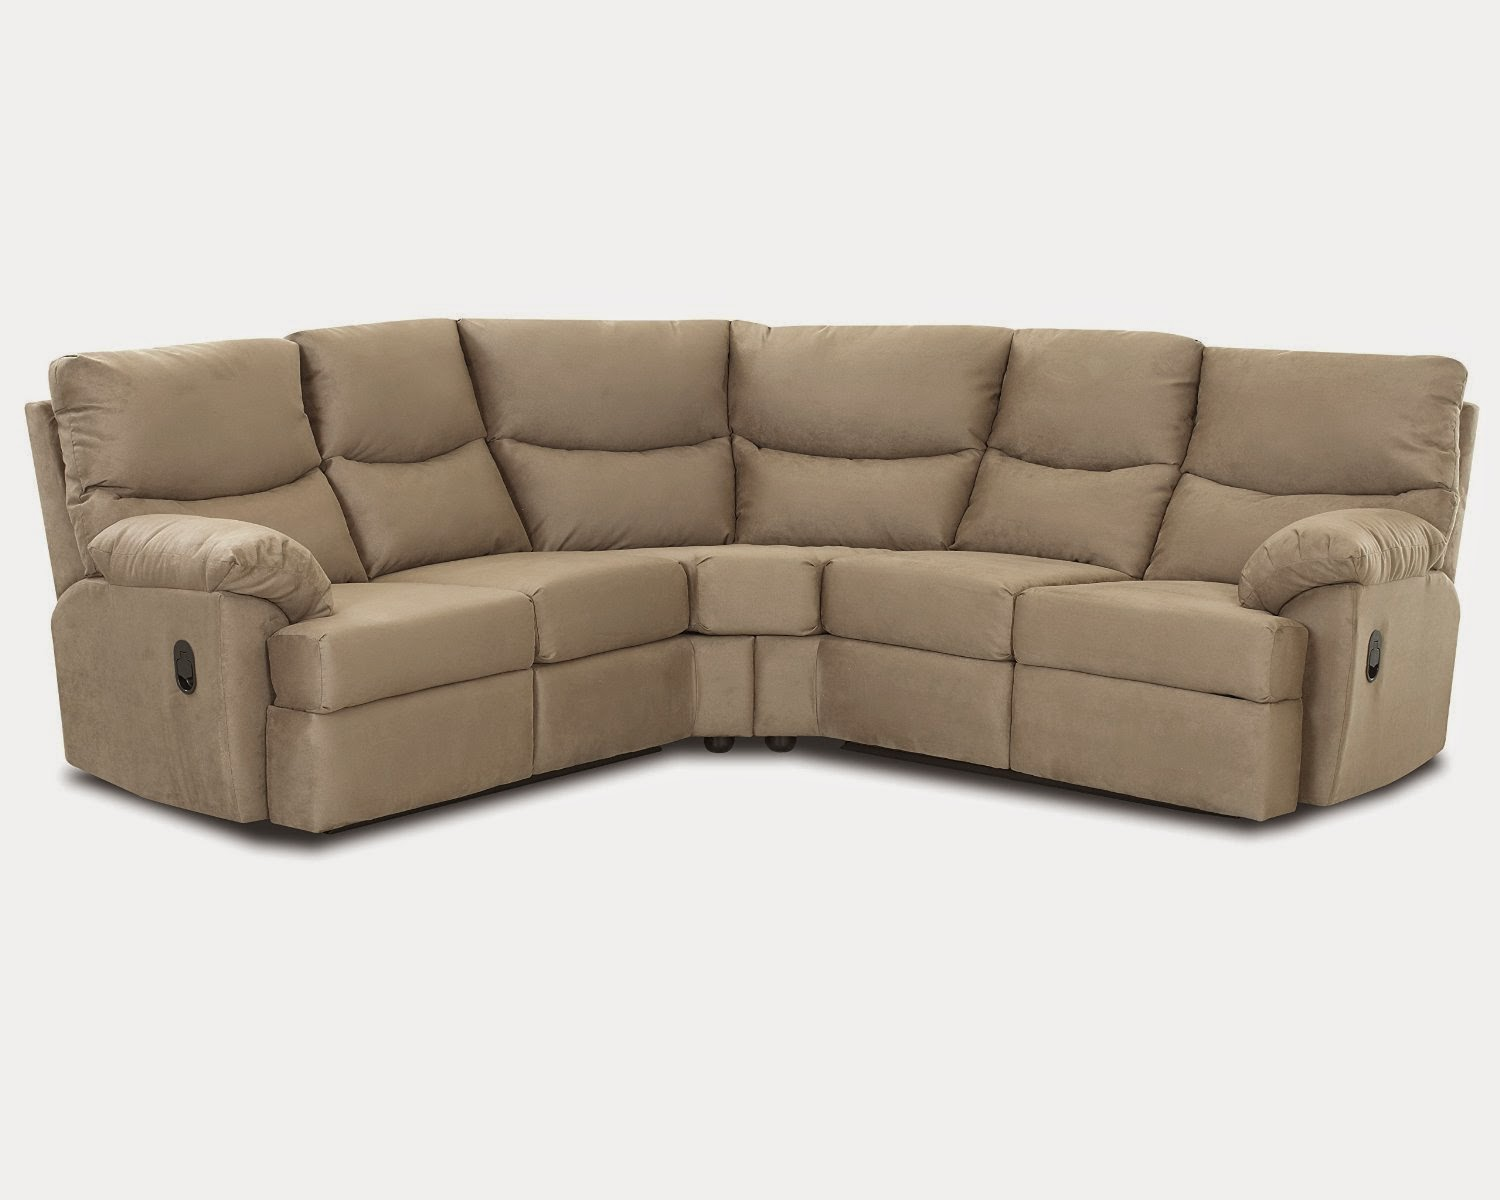 Cheap recliner sofas for sale april 2015 Reclining loveseat sale